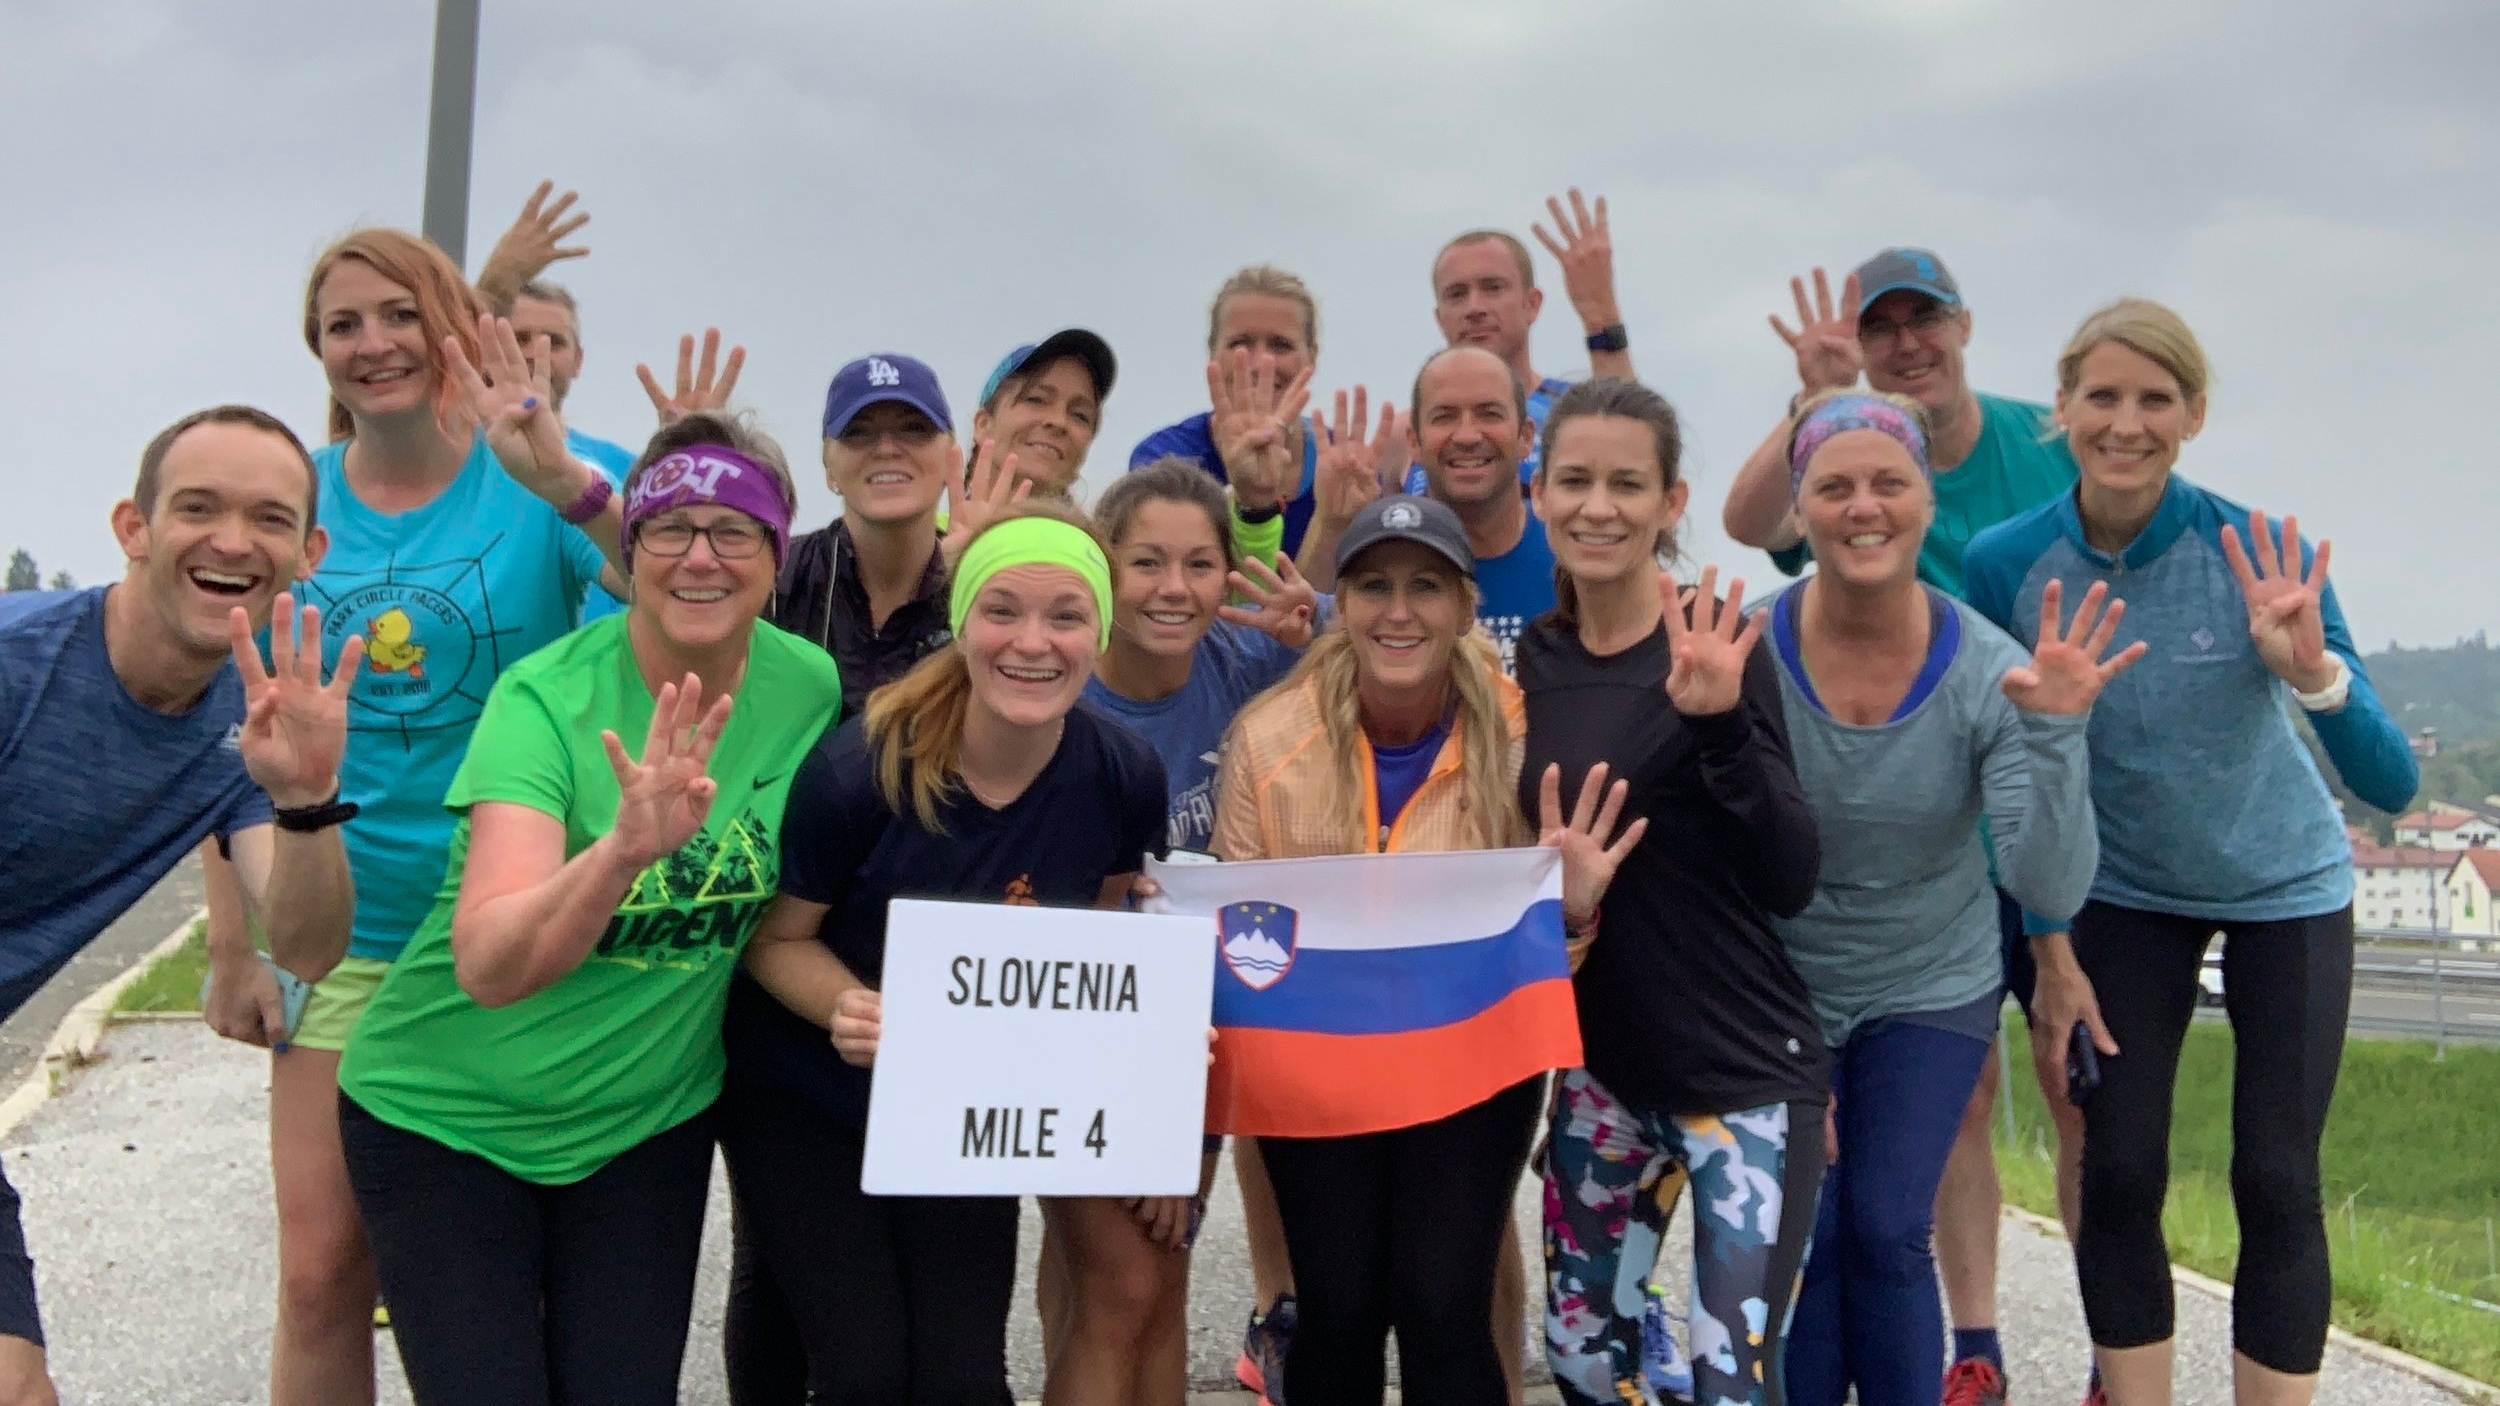 World Record! First known/documented runners to run in at least 4 countries in a single day.